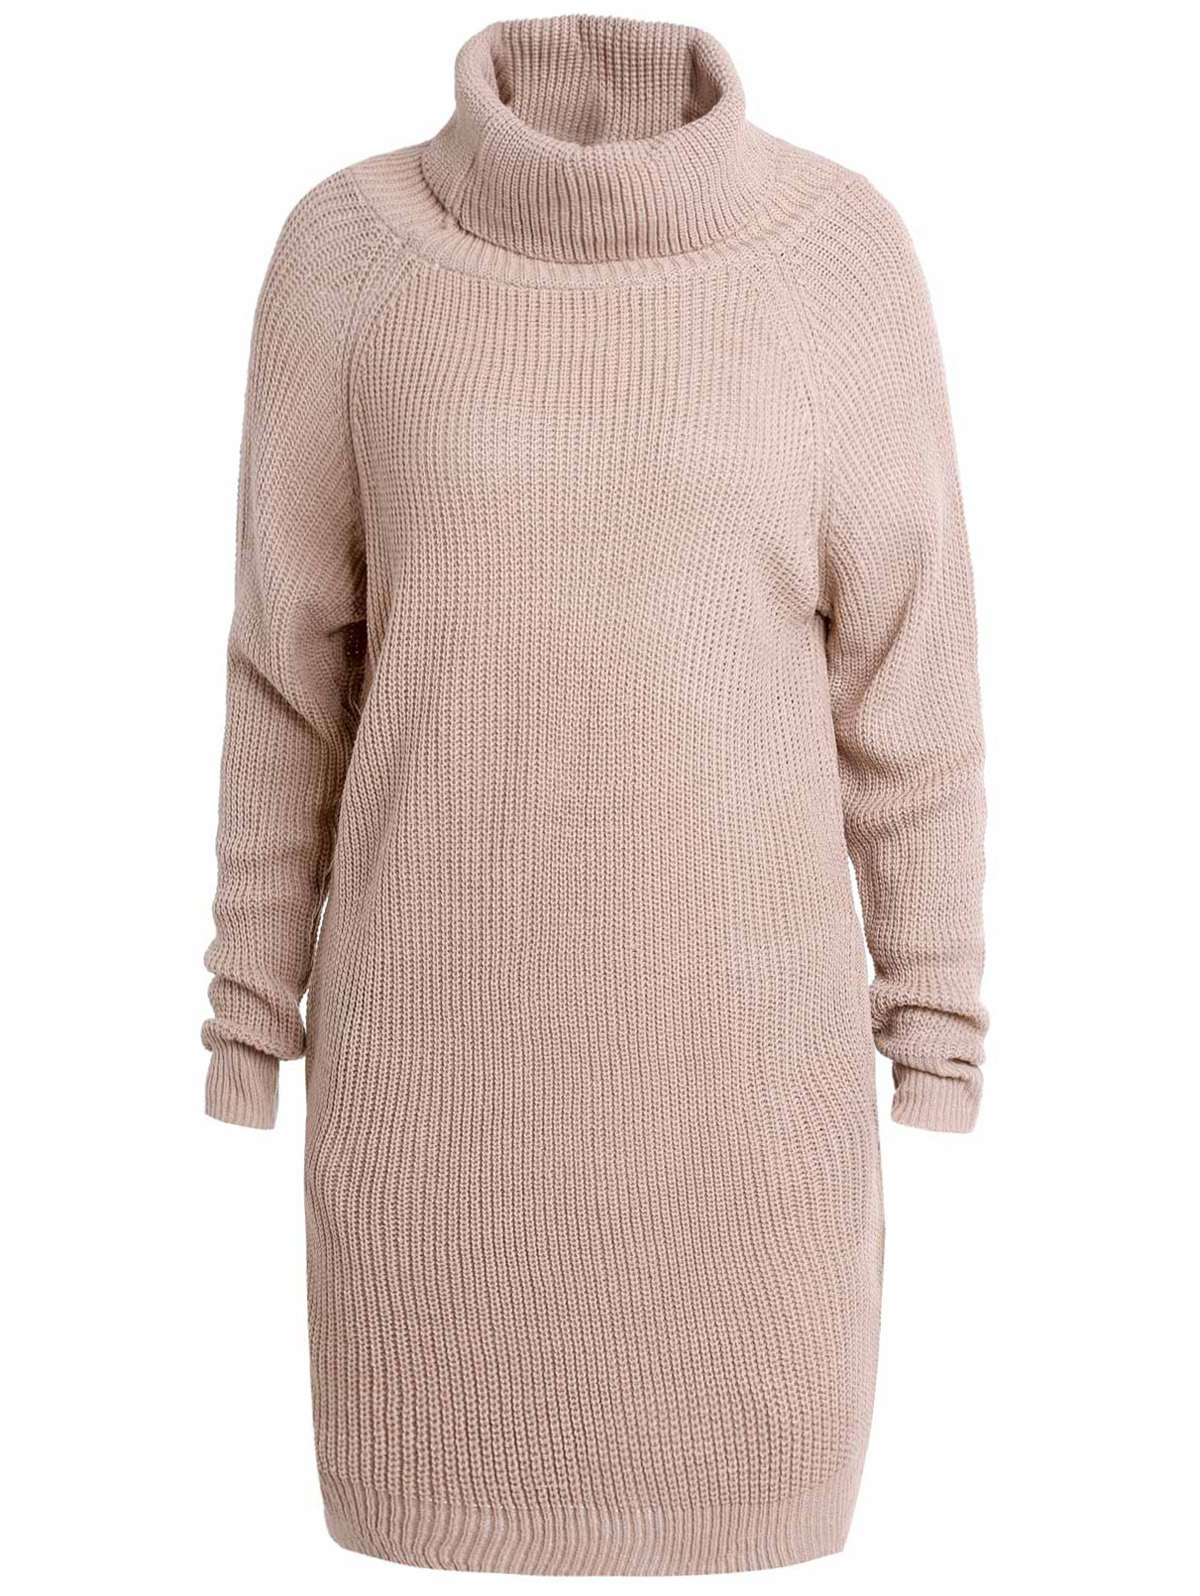 Stylish Long Sleeve Turtleneck Loose-Fitting Pure Color Women's Long Sweater - LIGHT APRICOT XL